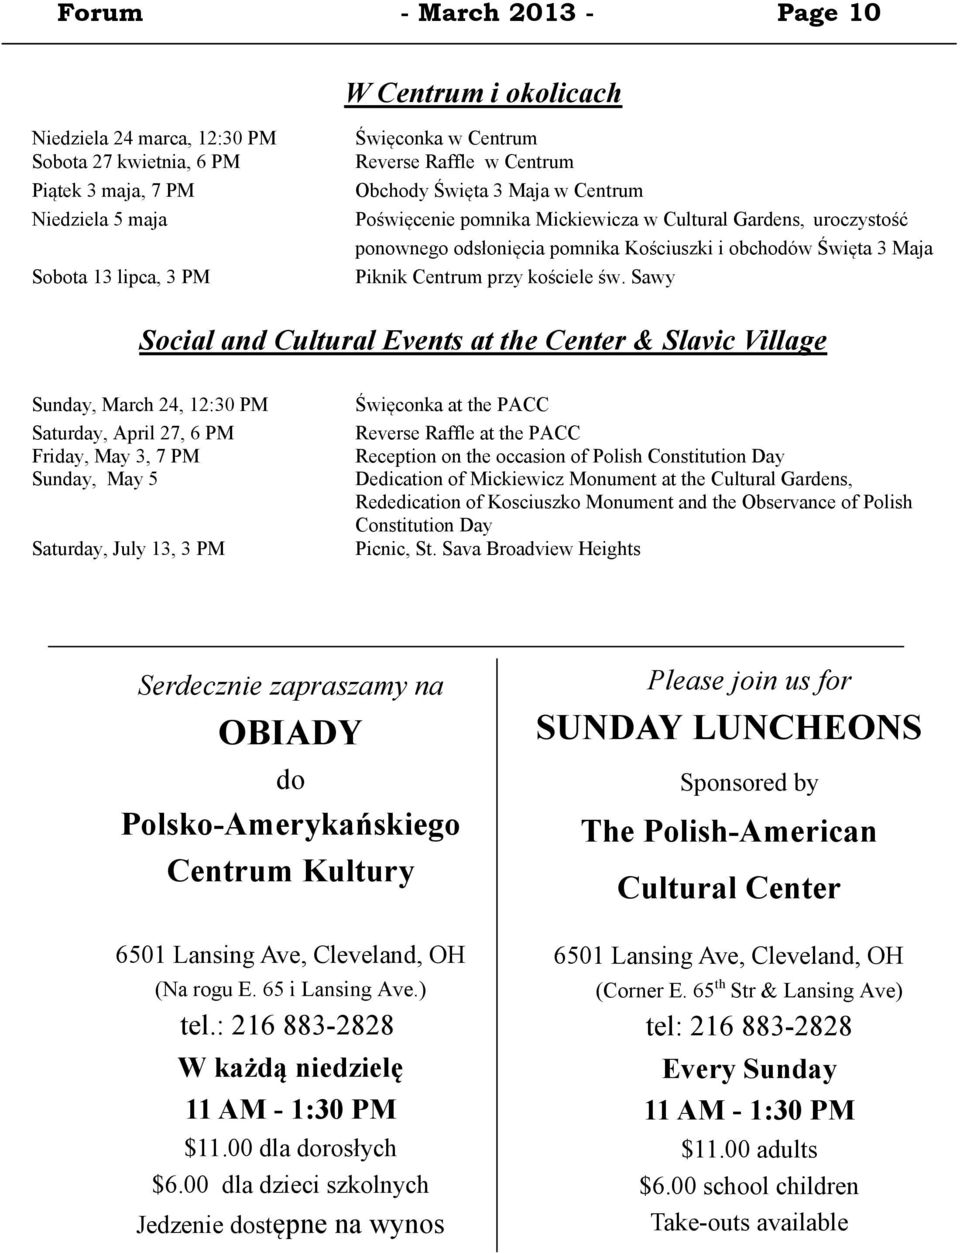 Sawy Social and Cultural Events at the Center & Slavic Village Sunday, March 24, 12:30 PM Saturday, April 27, 6 PM Żriday, May 3, 7 PM Sunday, May 5 więconka at the PACC Reverse Raffle at the PACC